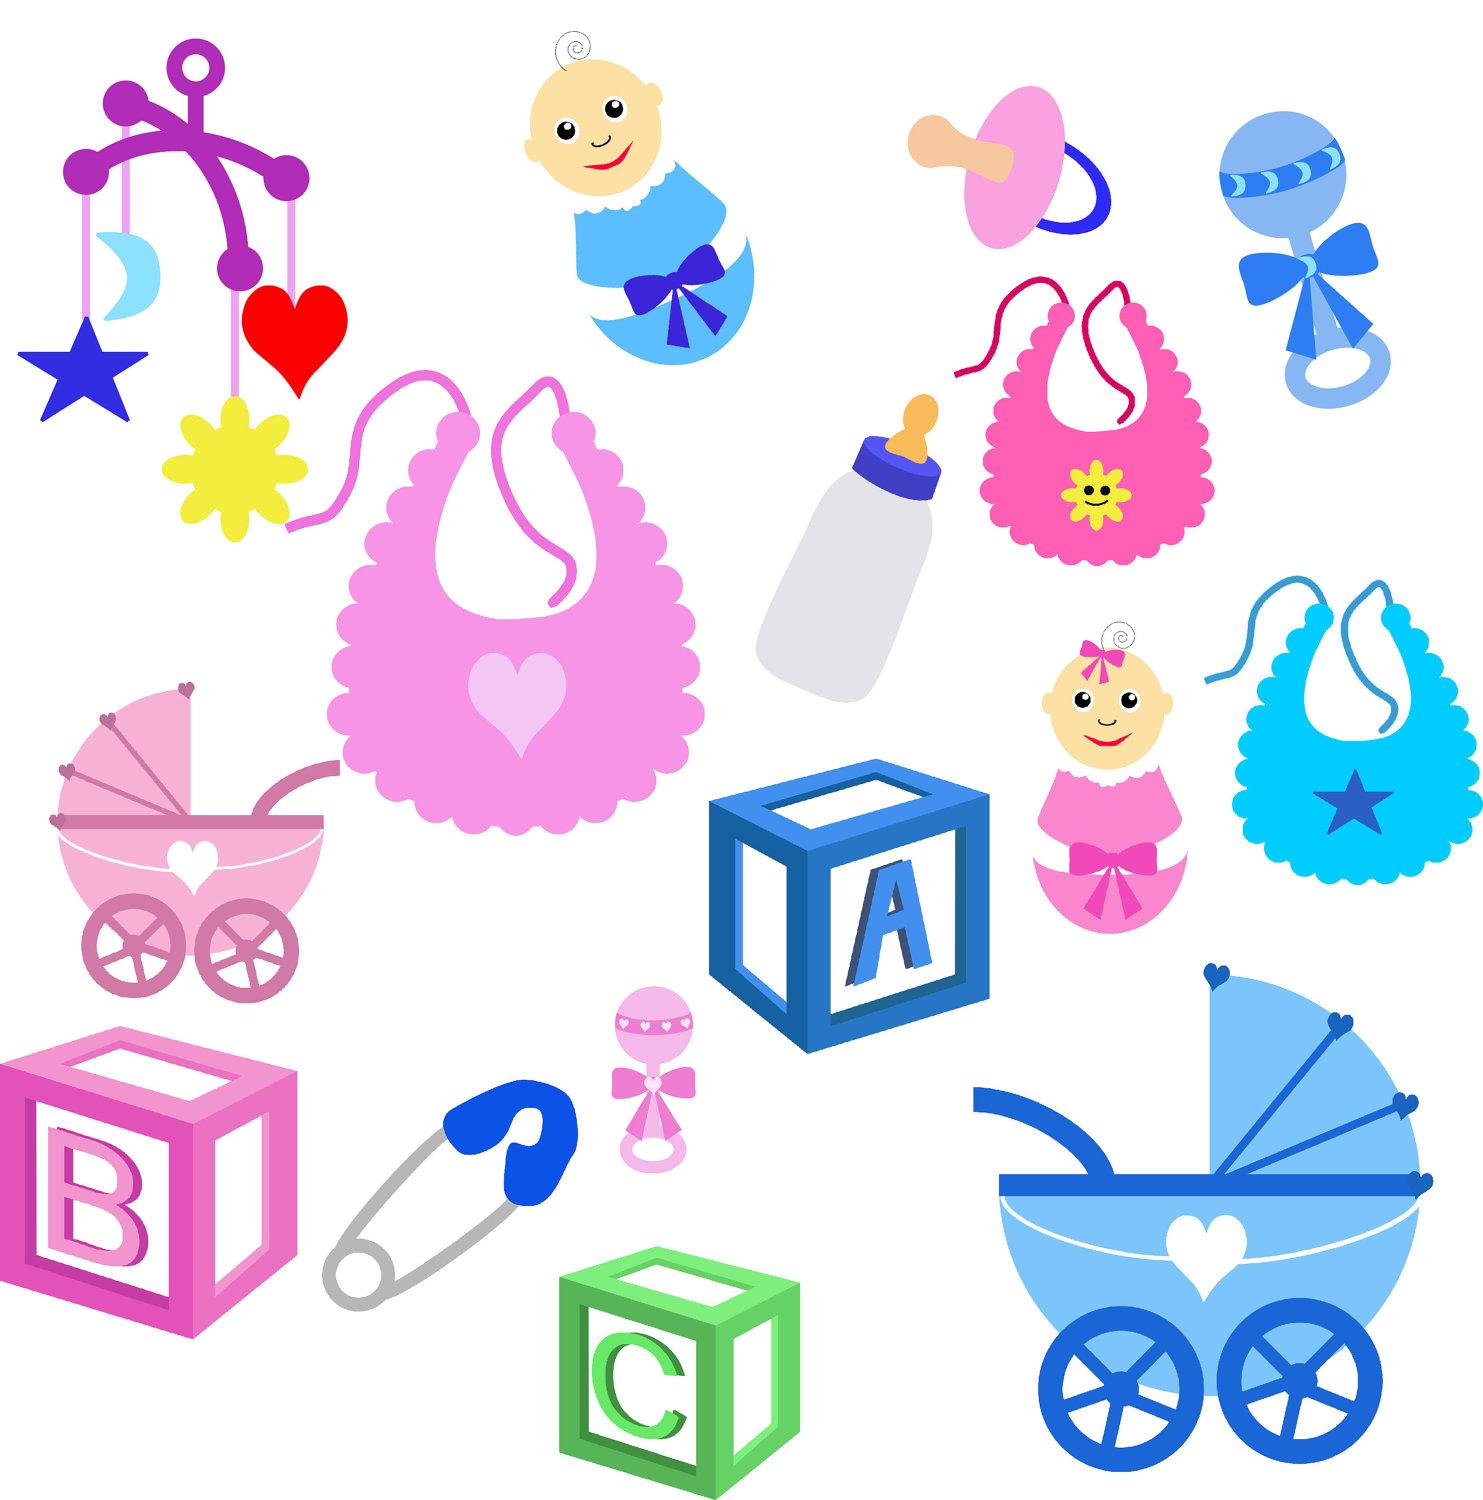 Baby items cliparts jpg black and white library Baby Items Cliparts - Cliparts Zone jpg black and white library